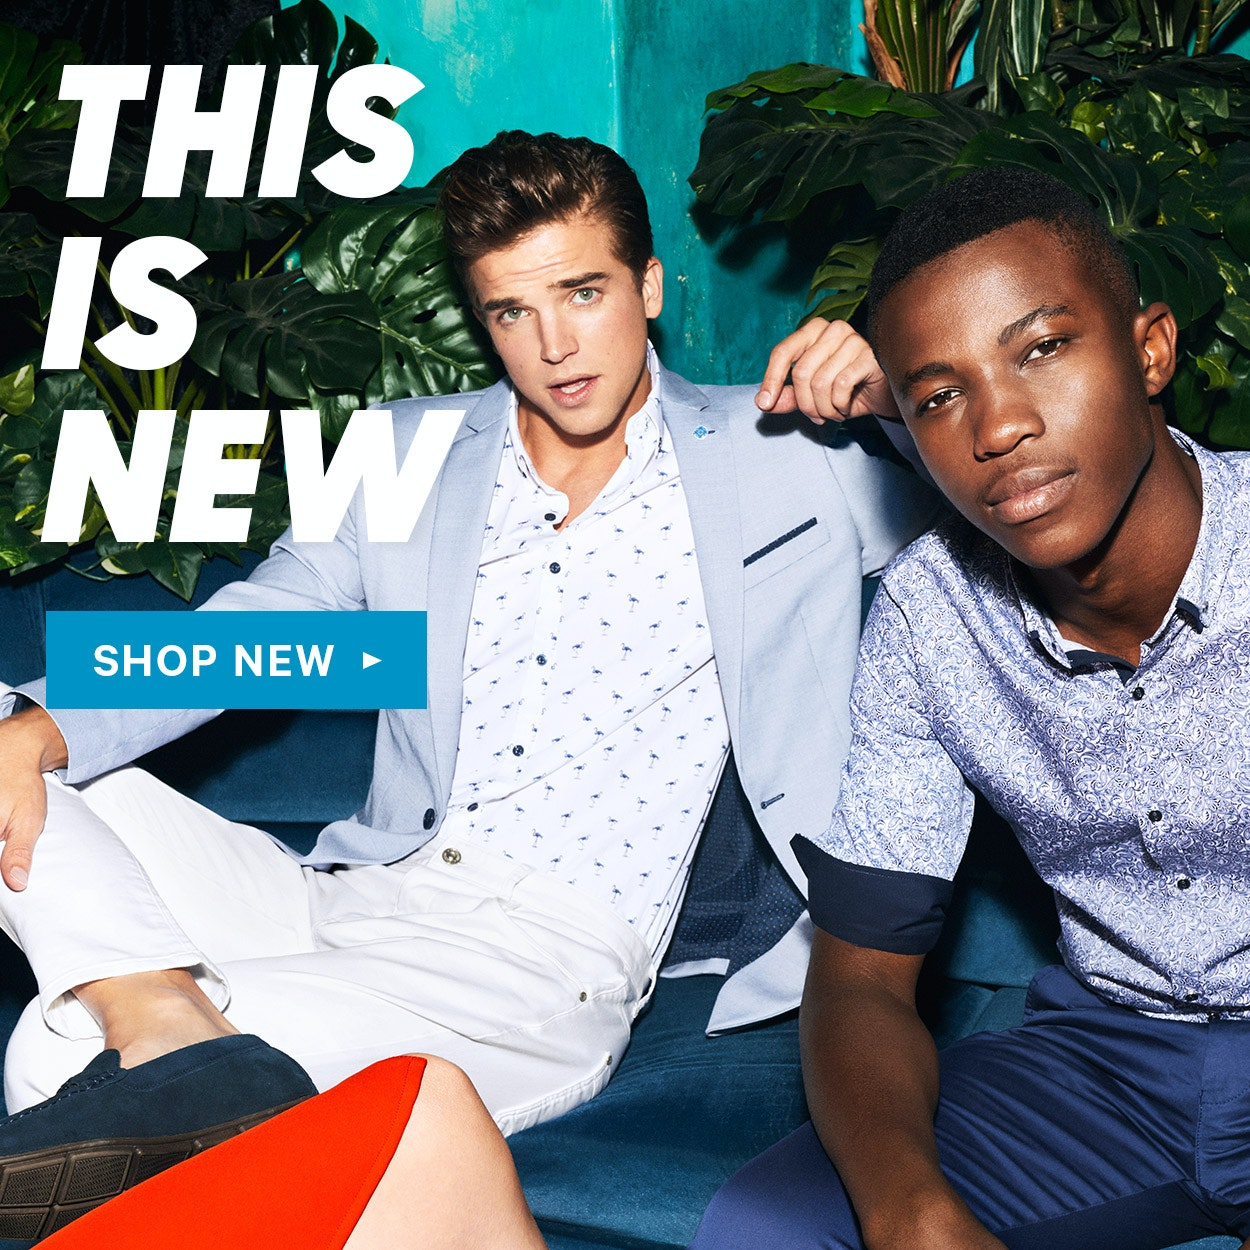 New Arrivals: check out the latest Spring men's clothing range from yd